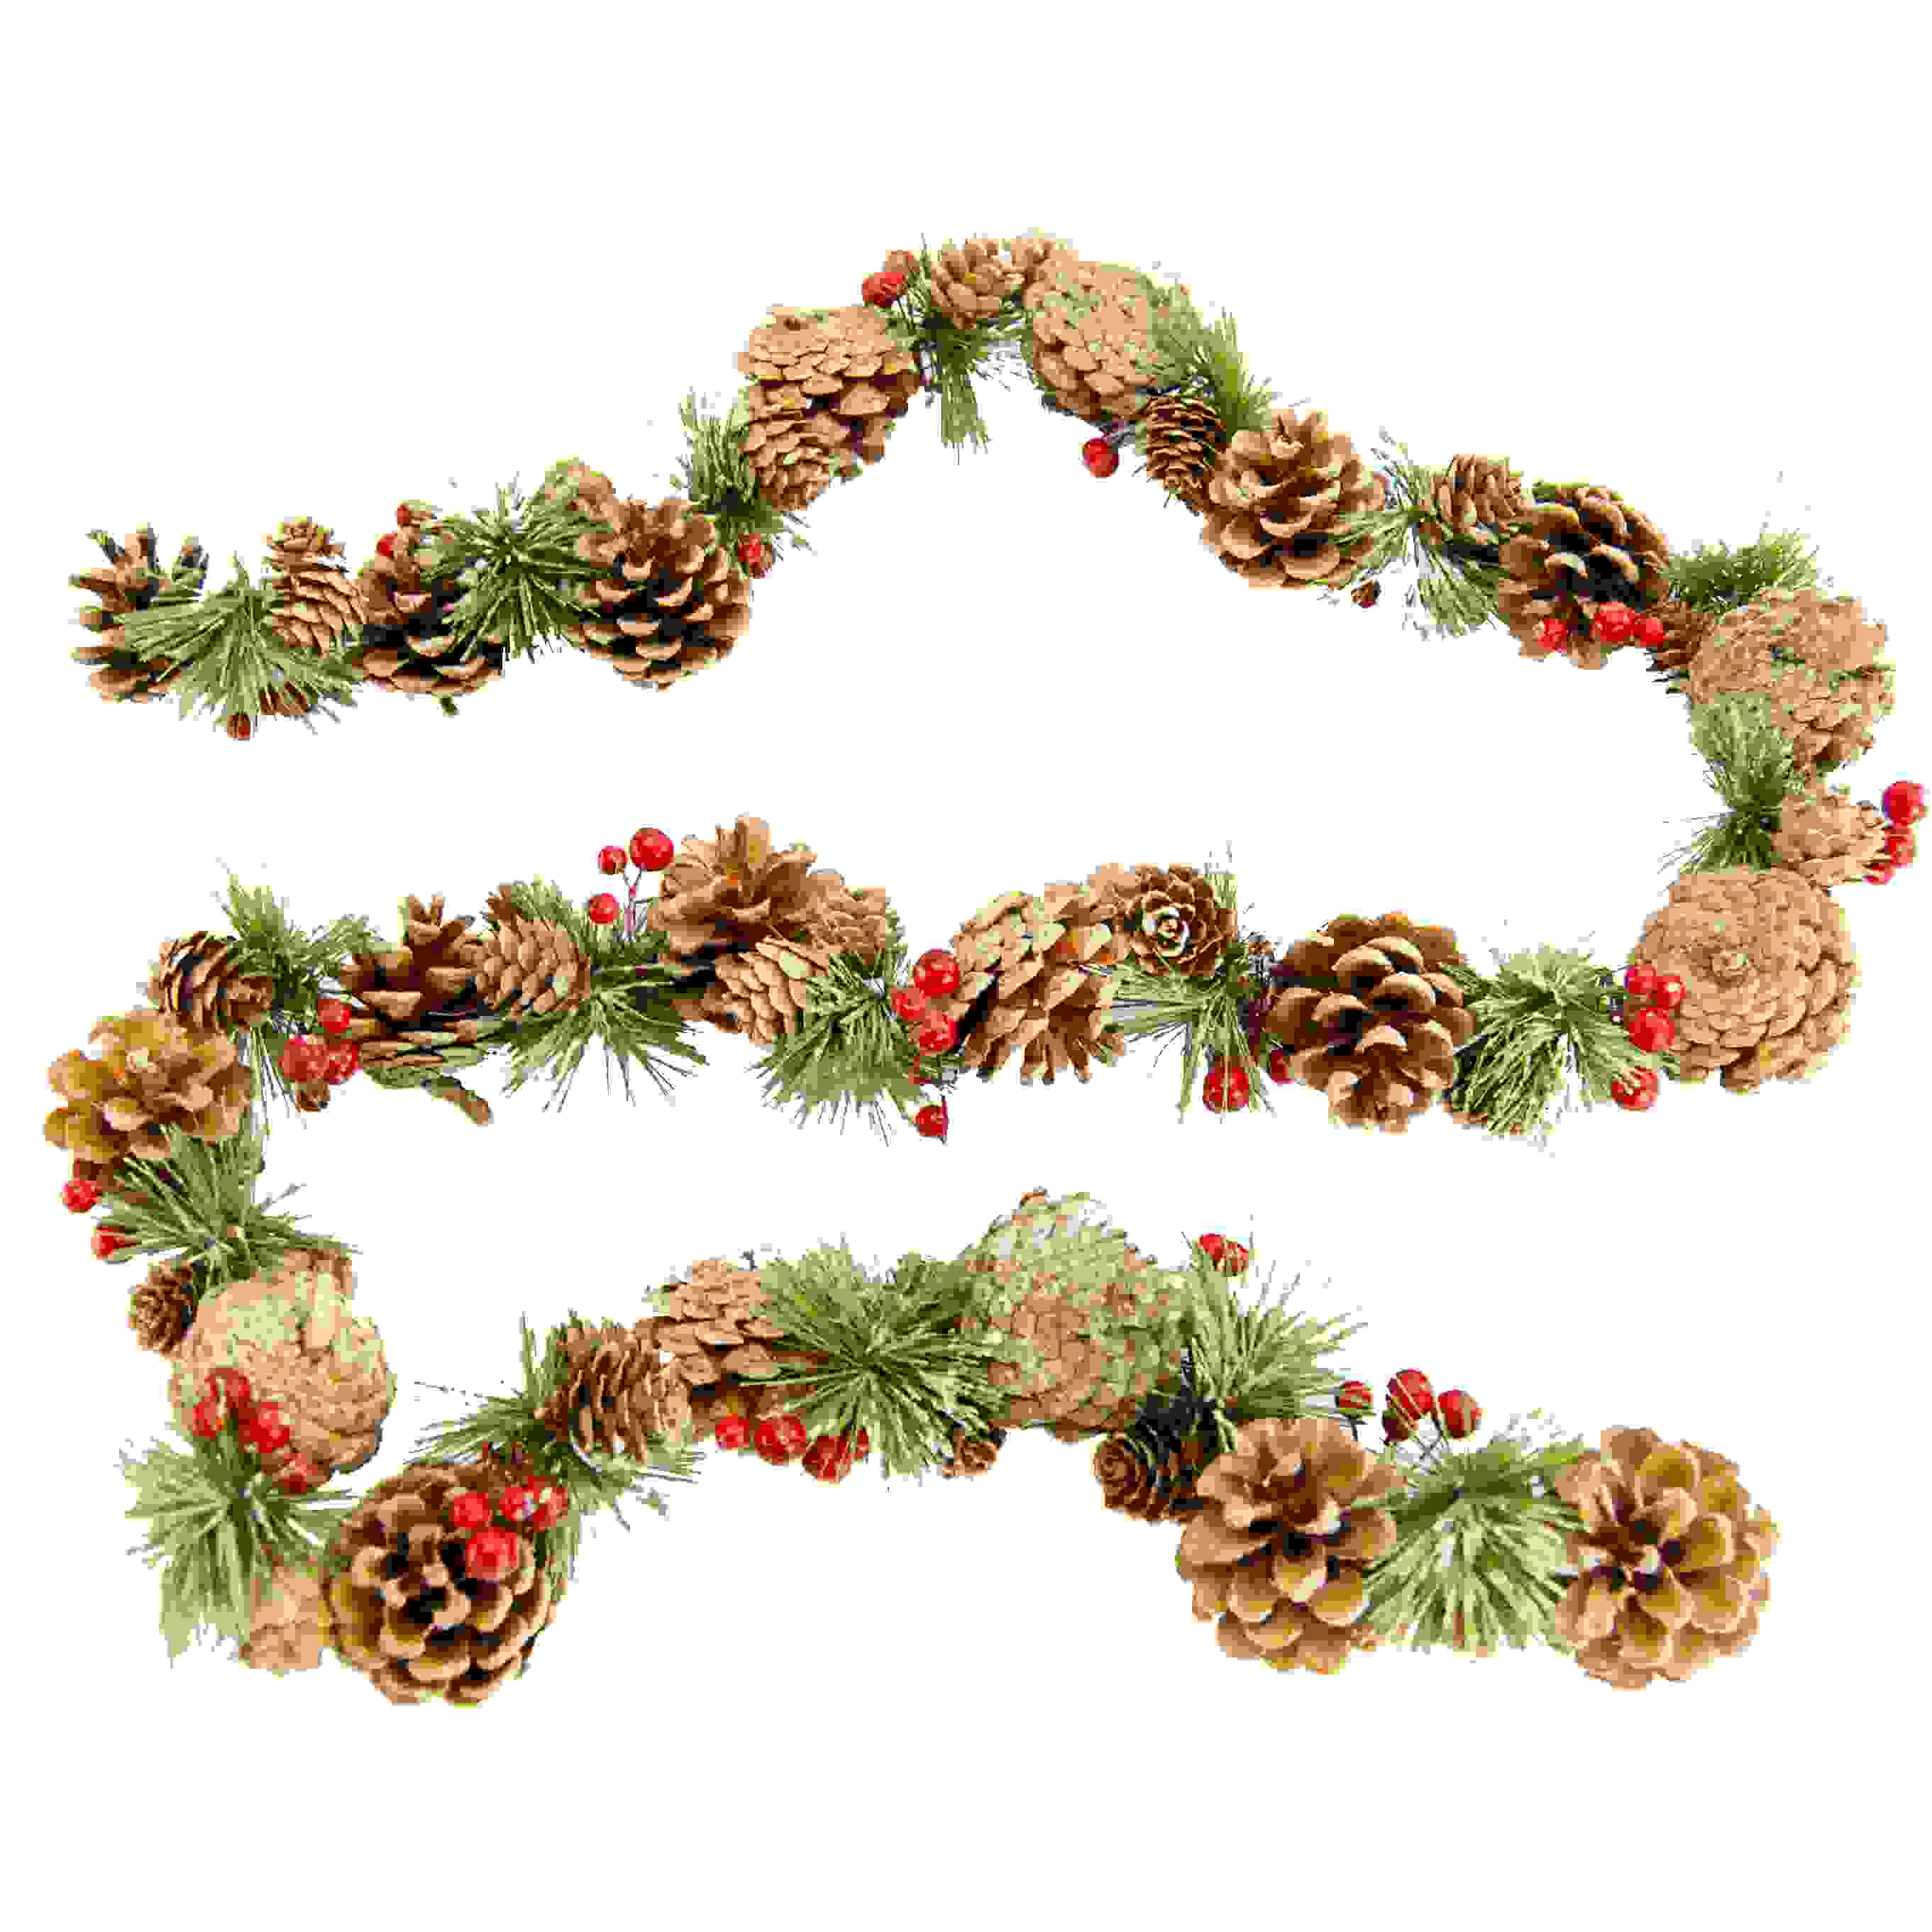 GARLAND 160cm PINECONE RED BERRIES